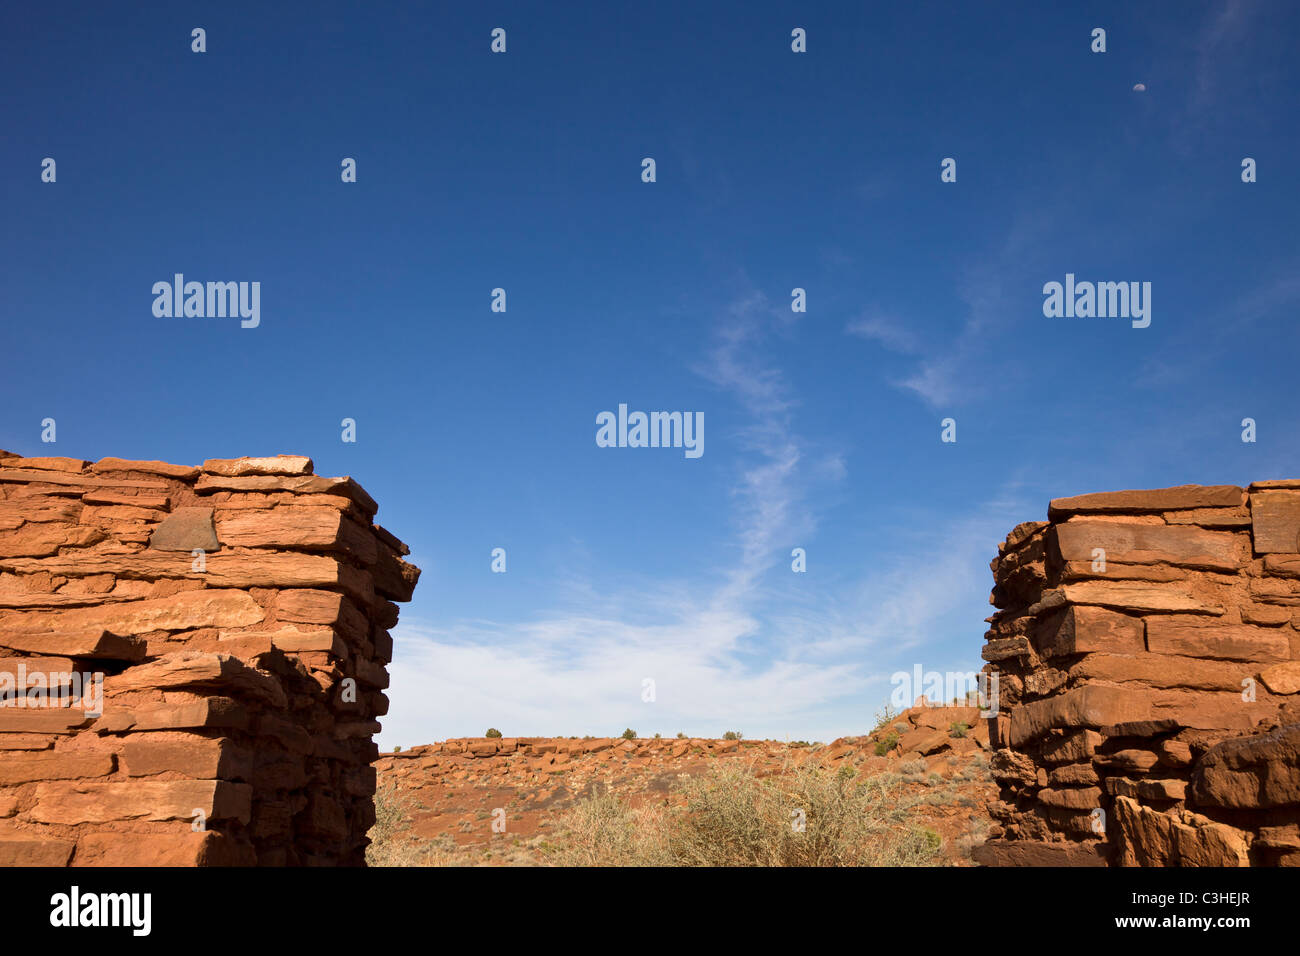 Masonry walls of ballcourt at Wupatki Pueblo, Wupatki National Monument, Arizona, USA. - Stock Image